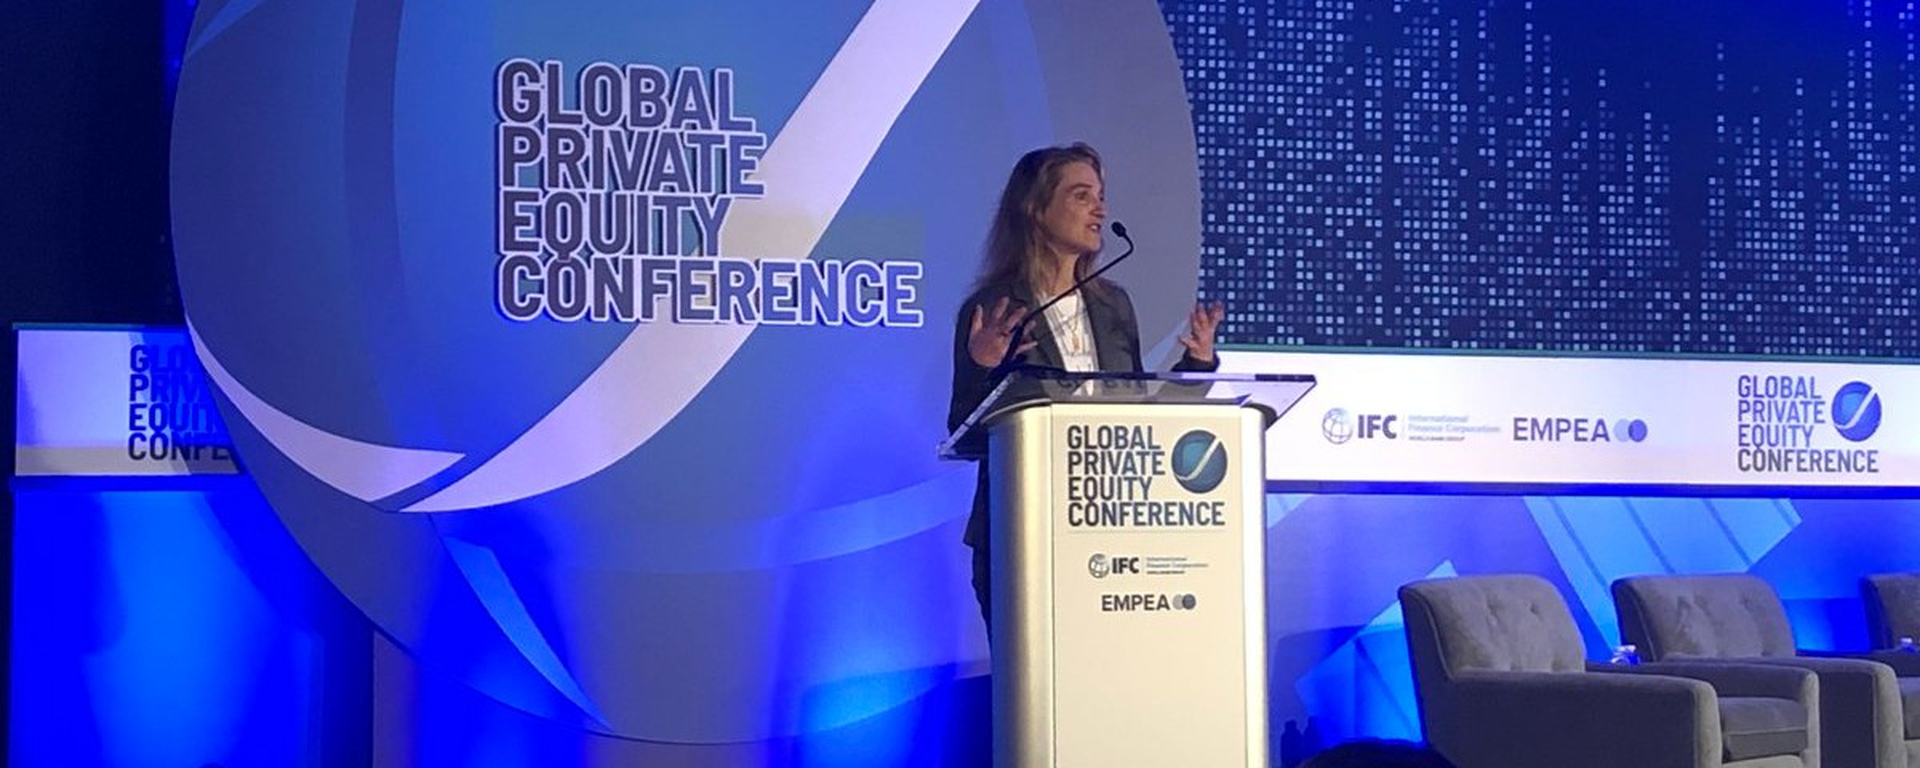 IFC - International Finance Corporation - Global Private Equity Conference Movemeback African event cover image